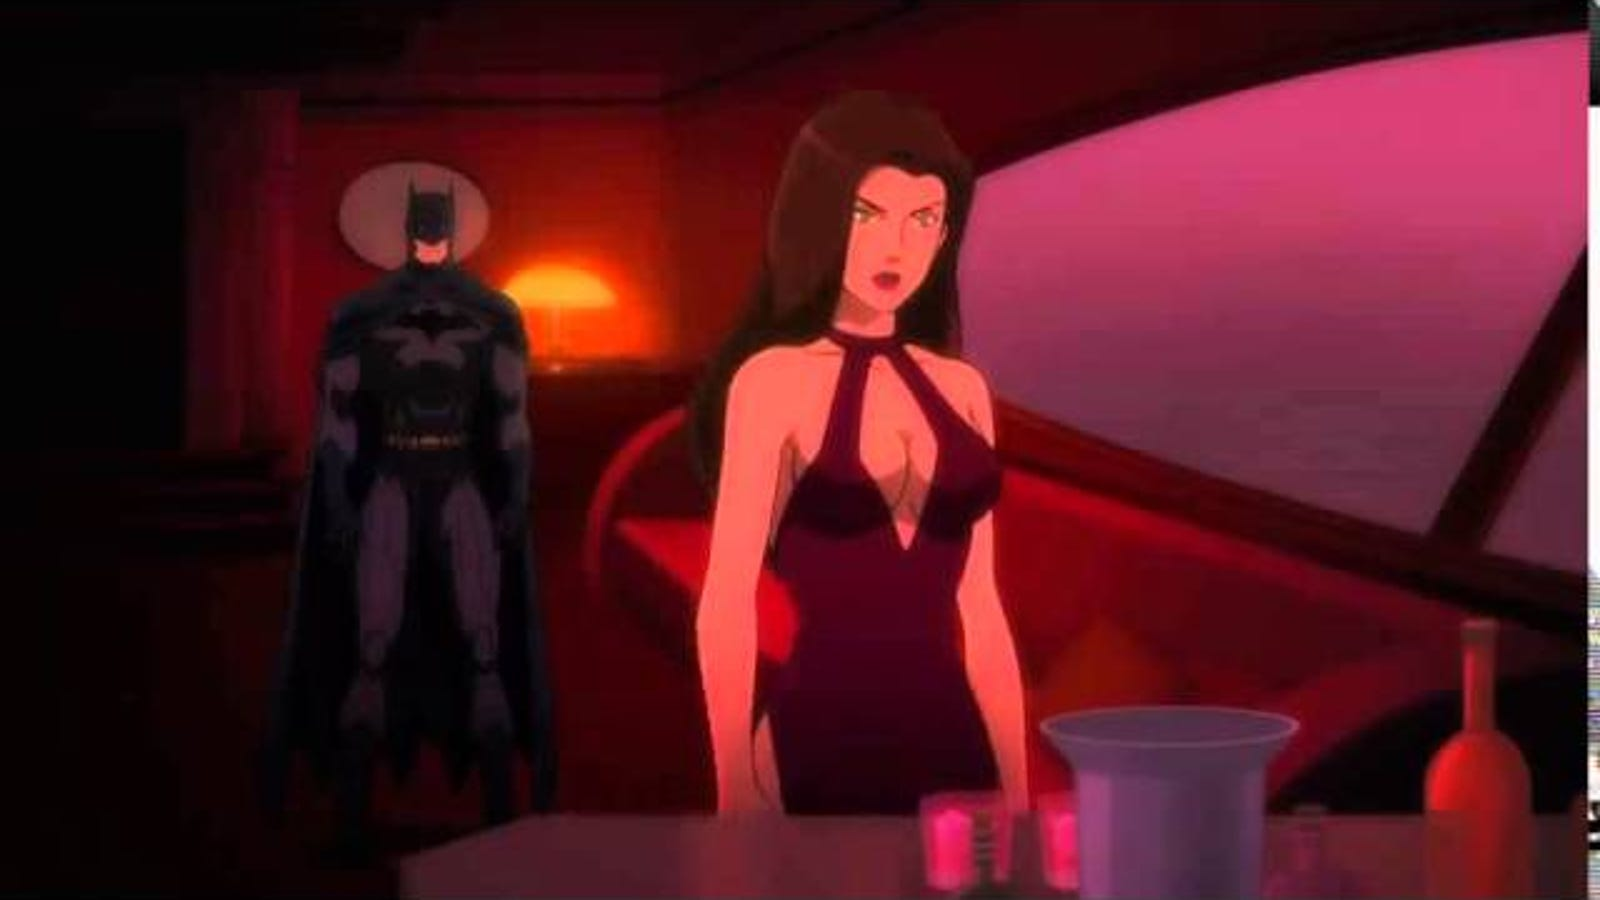 This Scene From Son of Batman is Just Shockingly Creepy